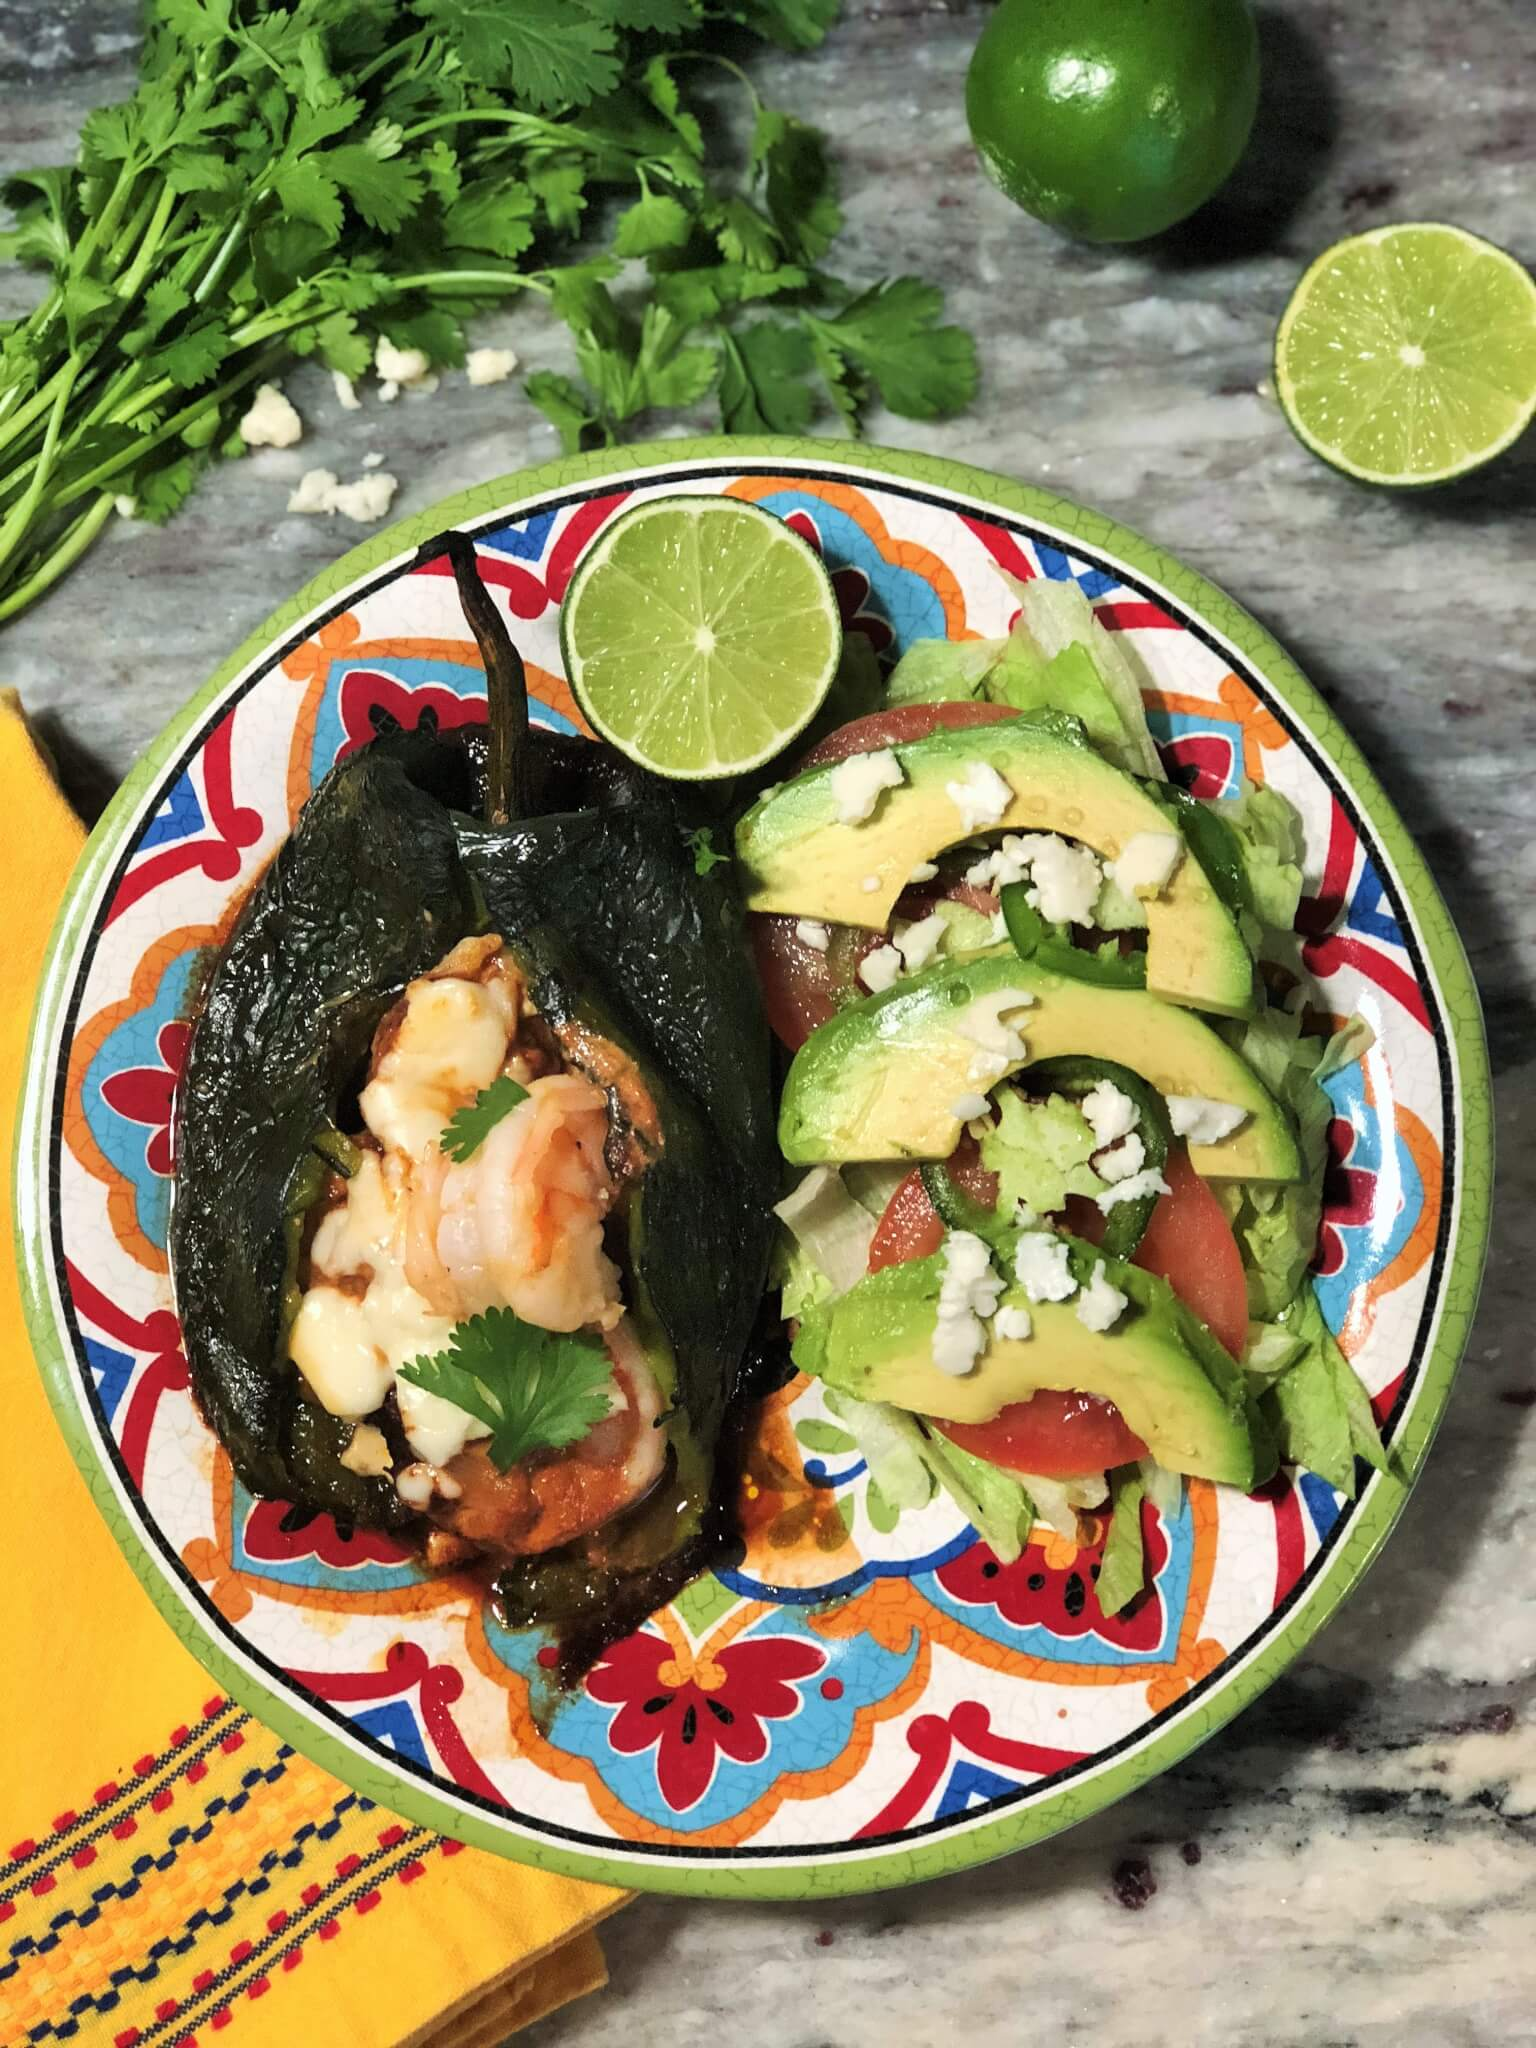 Plated Shrimp Chiles Rellenos with Avocado Salad